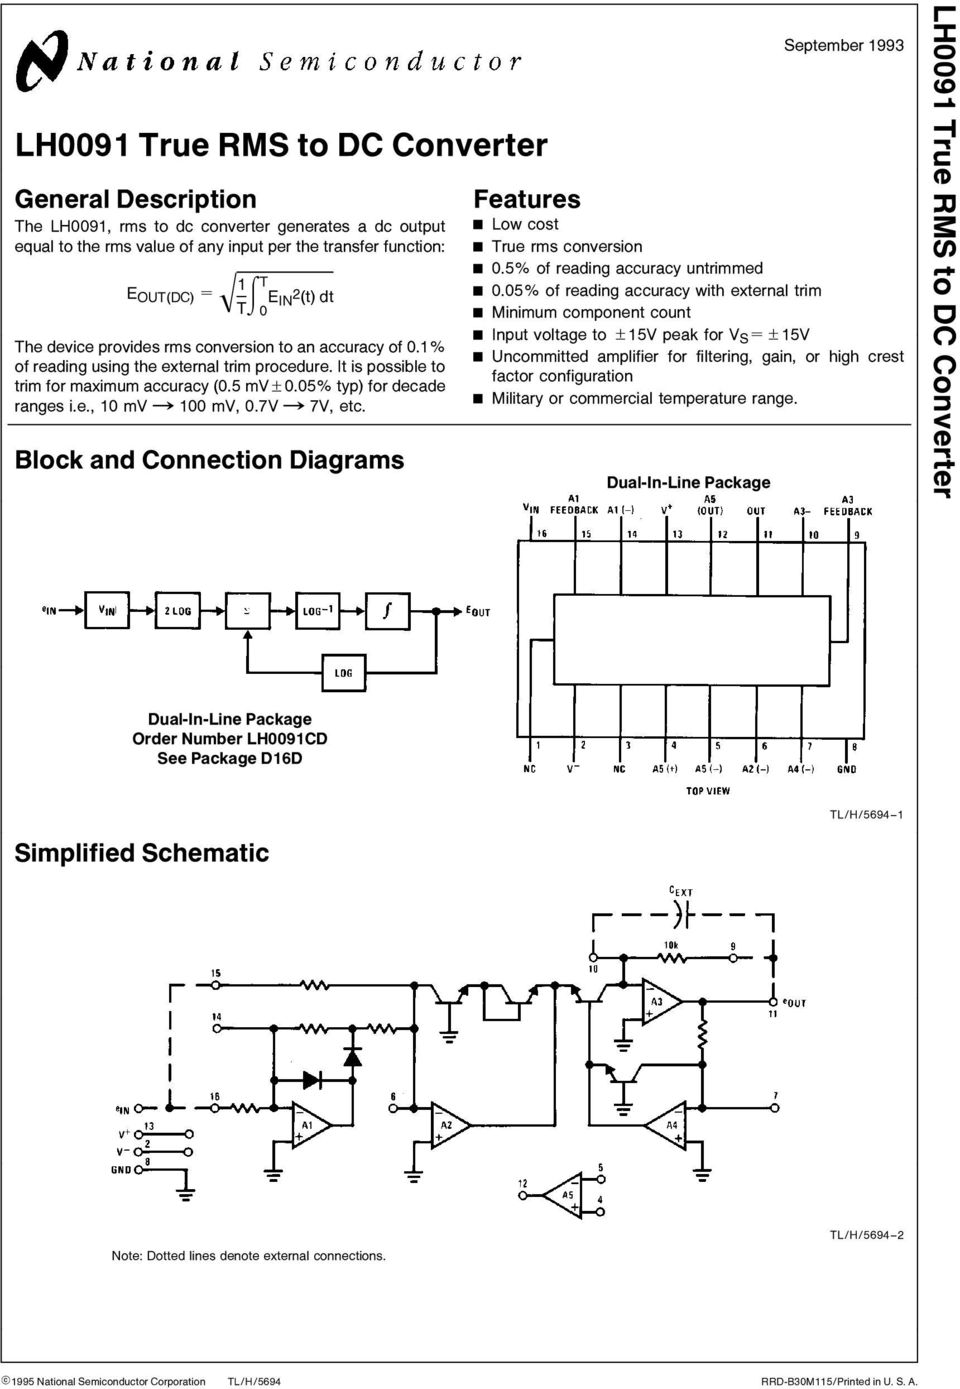 mvx100 mv 0 7Vx7V etc Block and Connection Diagrams Features September 1993 Low cost True rms conversion 0 5% of reading accuracy untrimmed 0 05% of reading accuracy with external trim Minimum